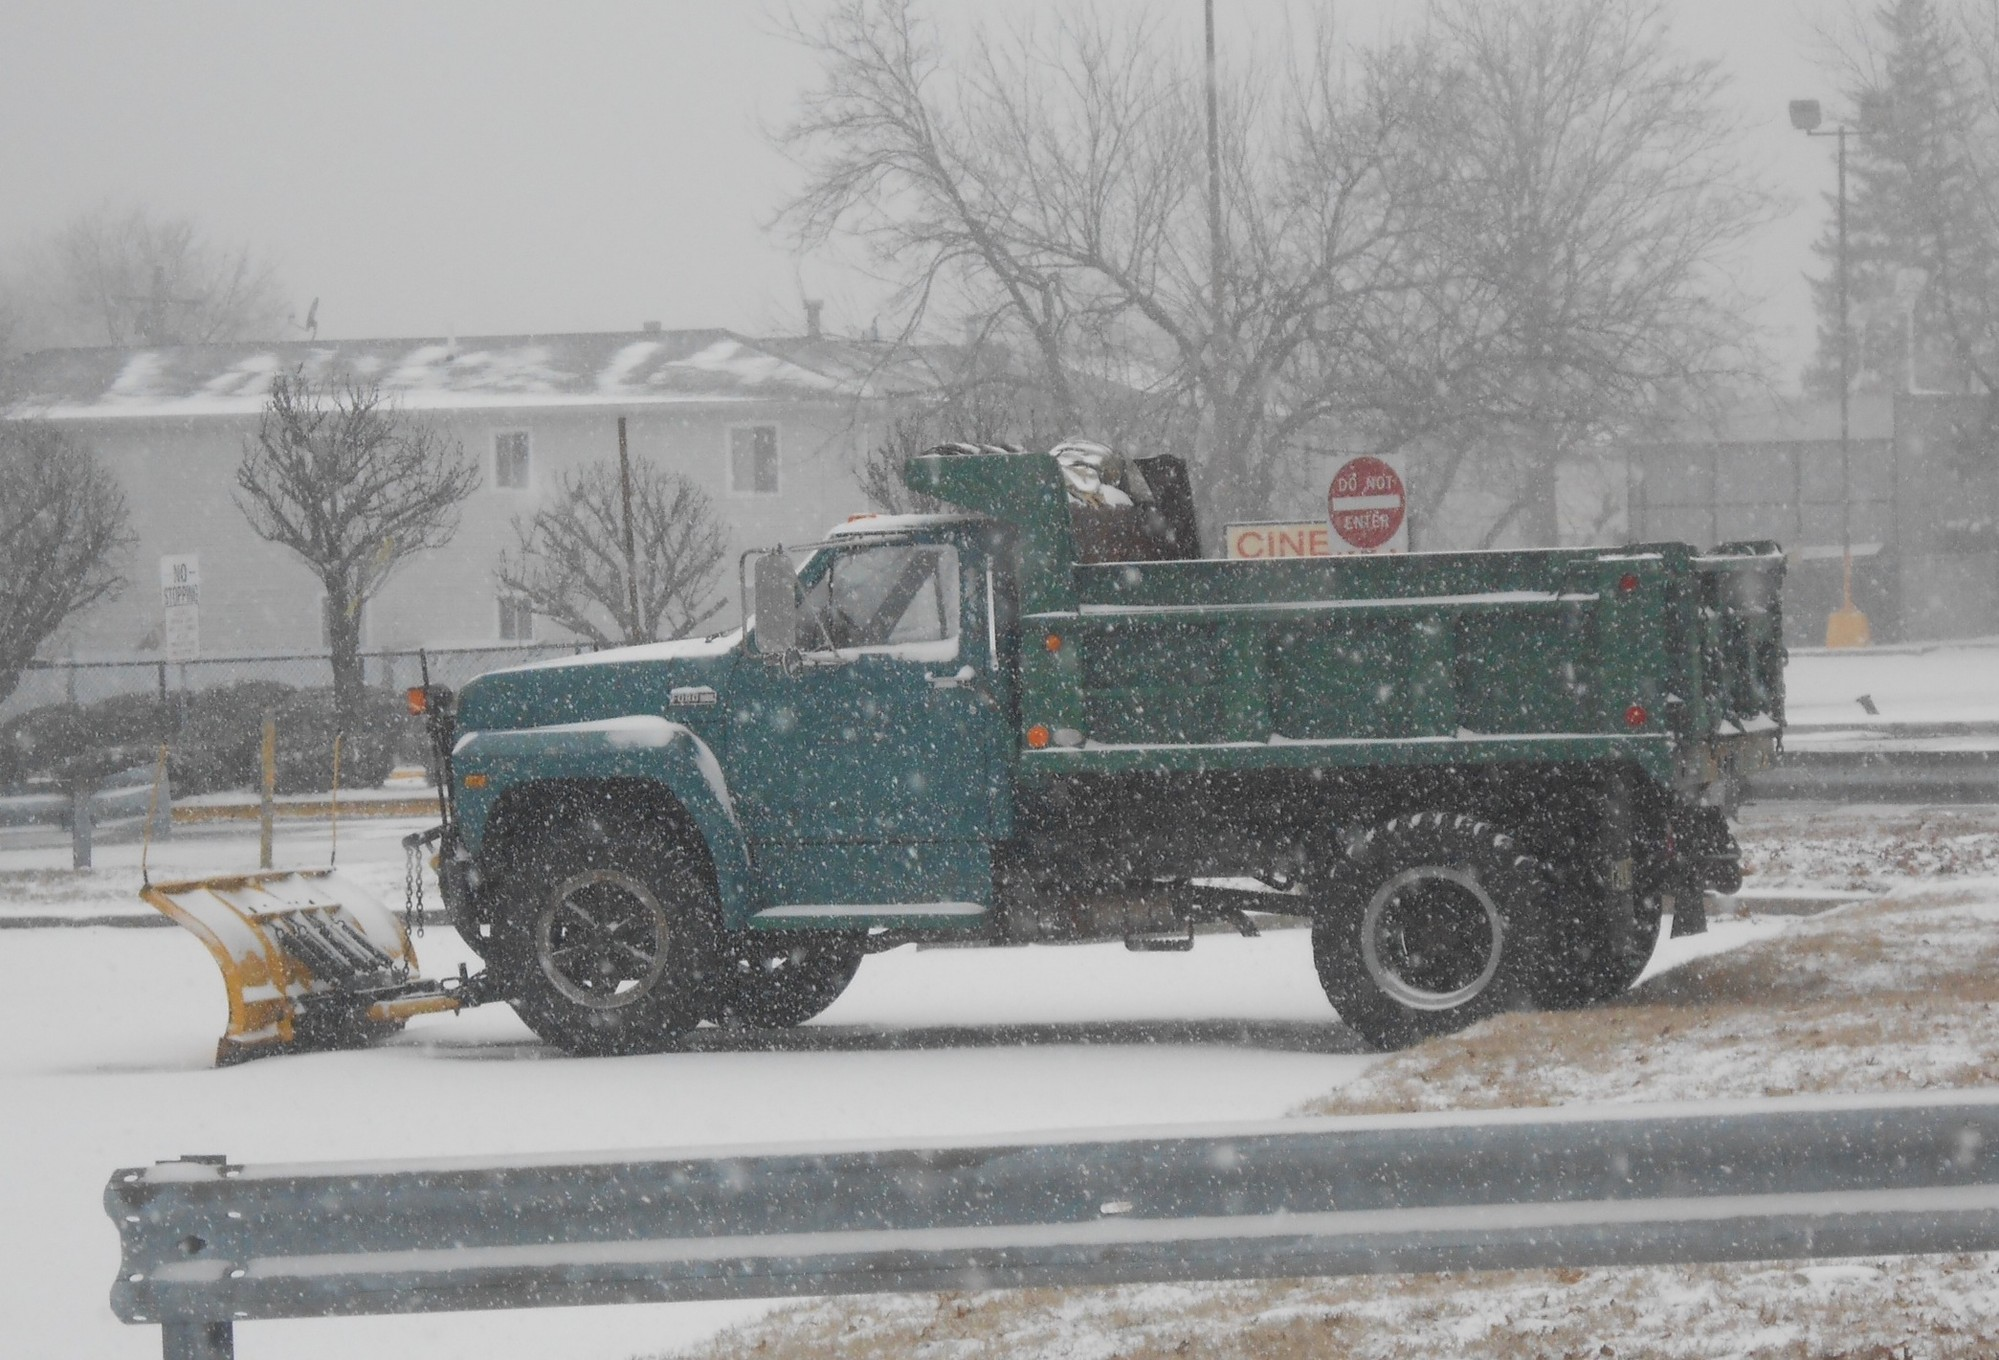 Plows were out in full force on Tuesday in Valley Stream as the latest snow storm began to hit the region.